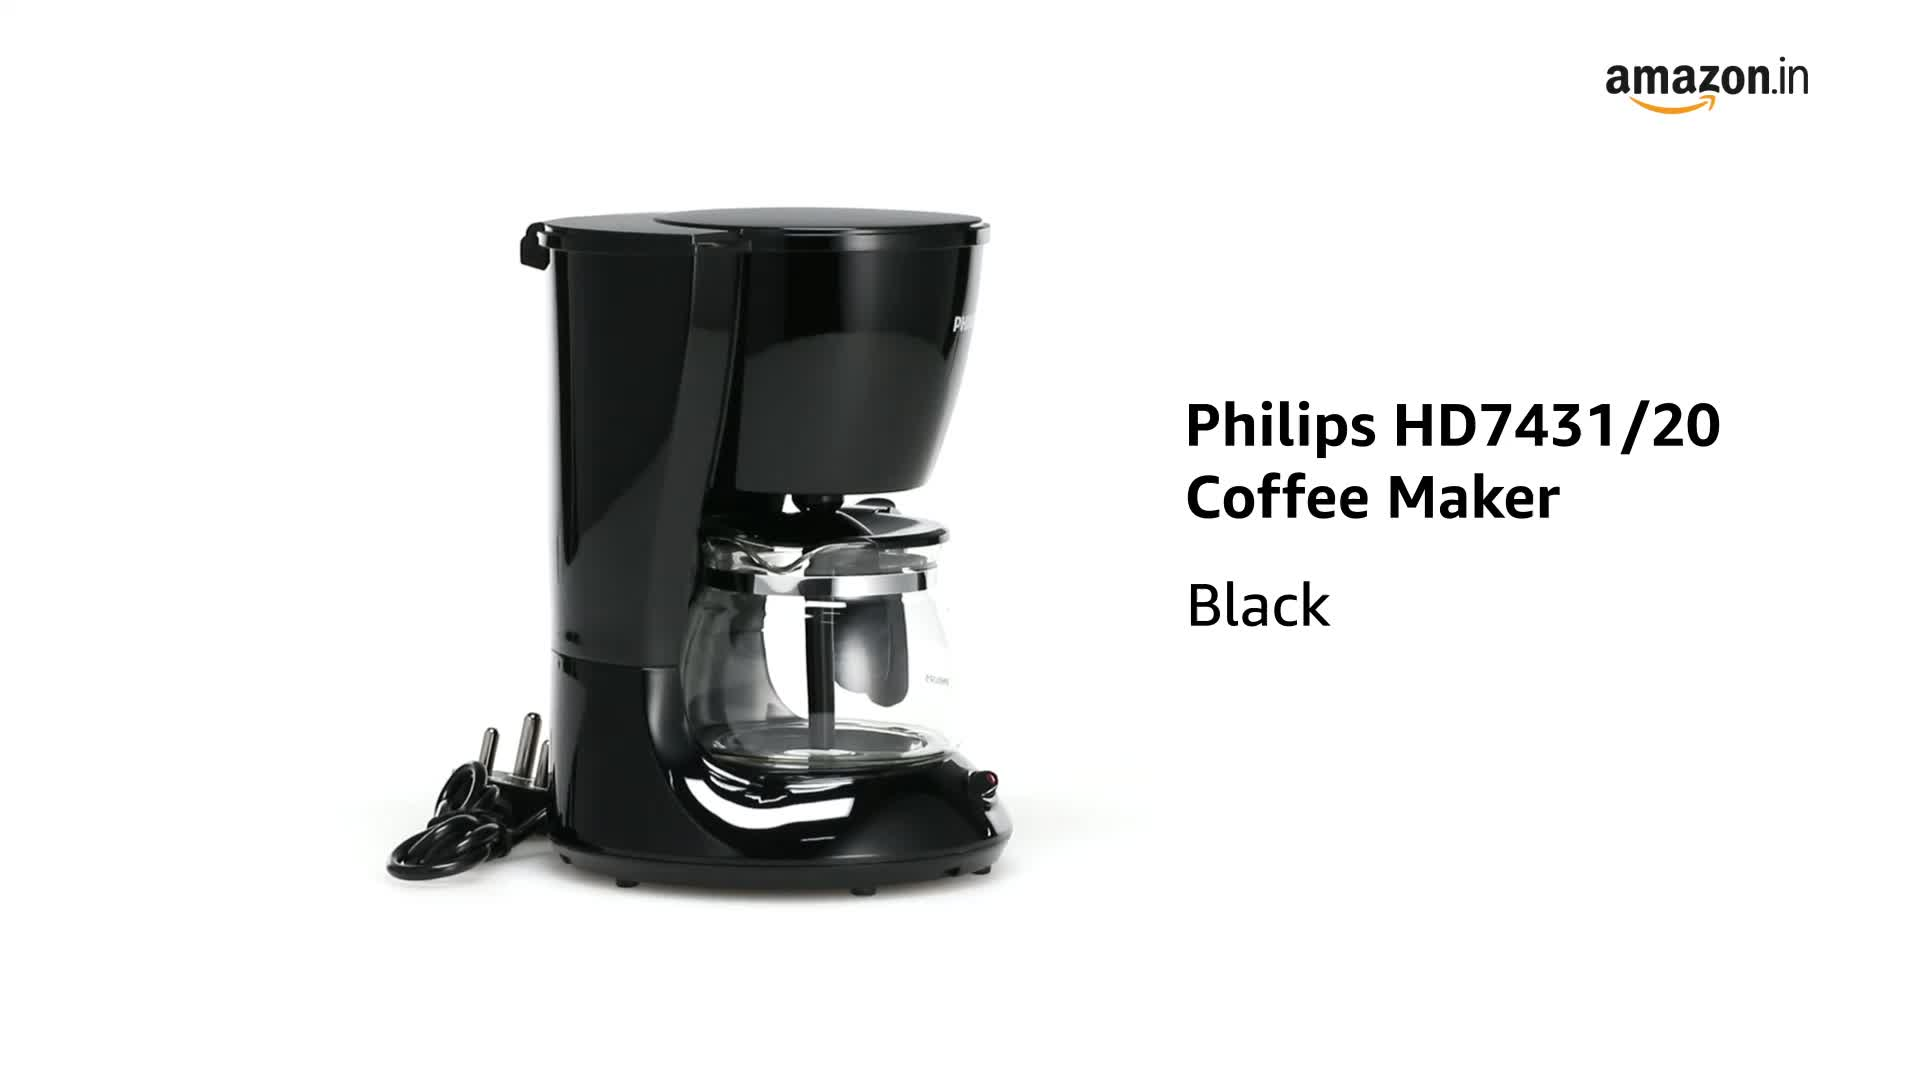 Buy Philips Hd7431 20 760 Watt Coffee Maker Black Online At Low Prices In India Amazon In